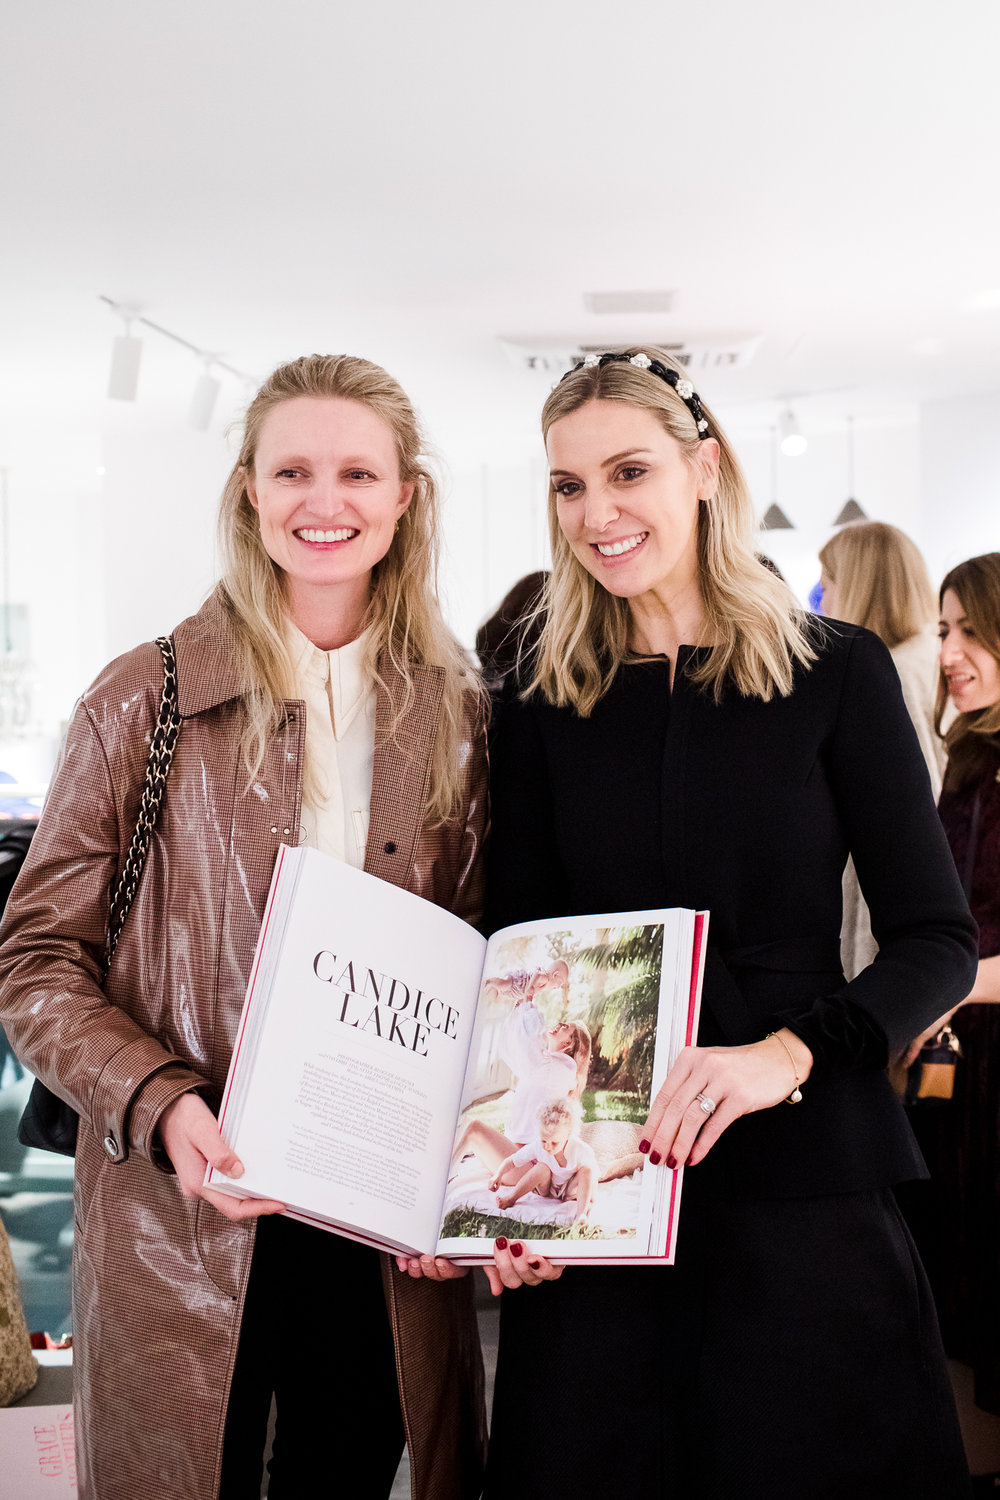 Candice Lake, Georgie Abay grace-mothers-letters-book-launch-bompoint-anaruivo-0756.jpg